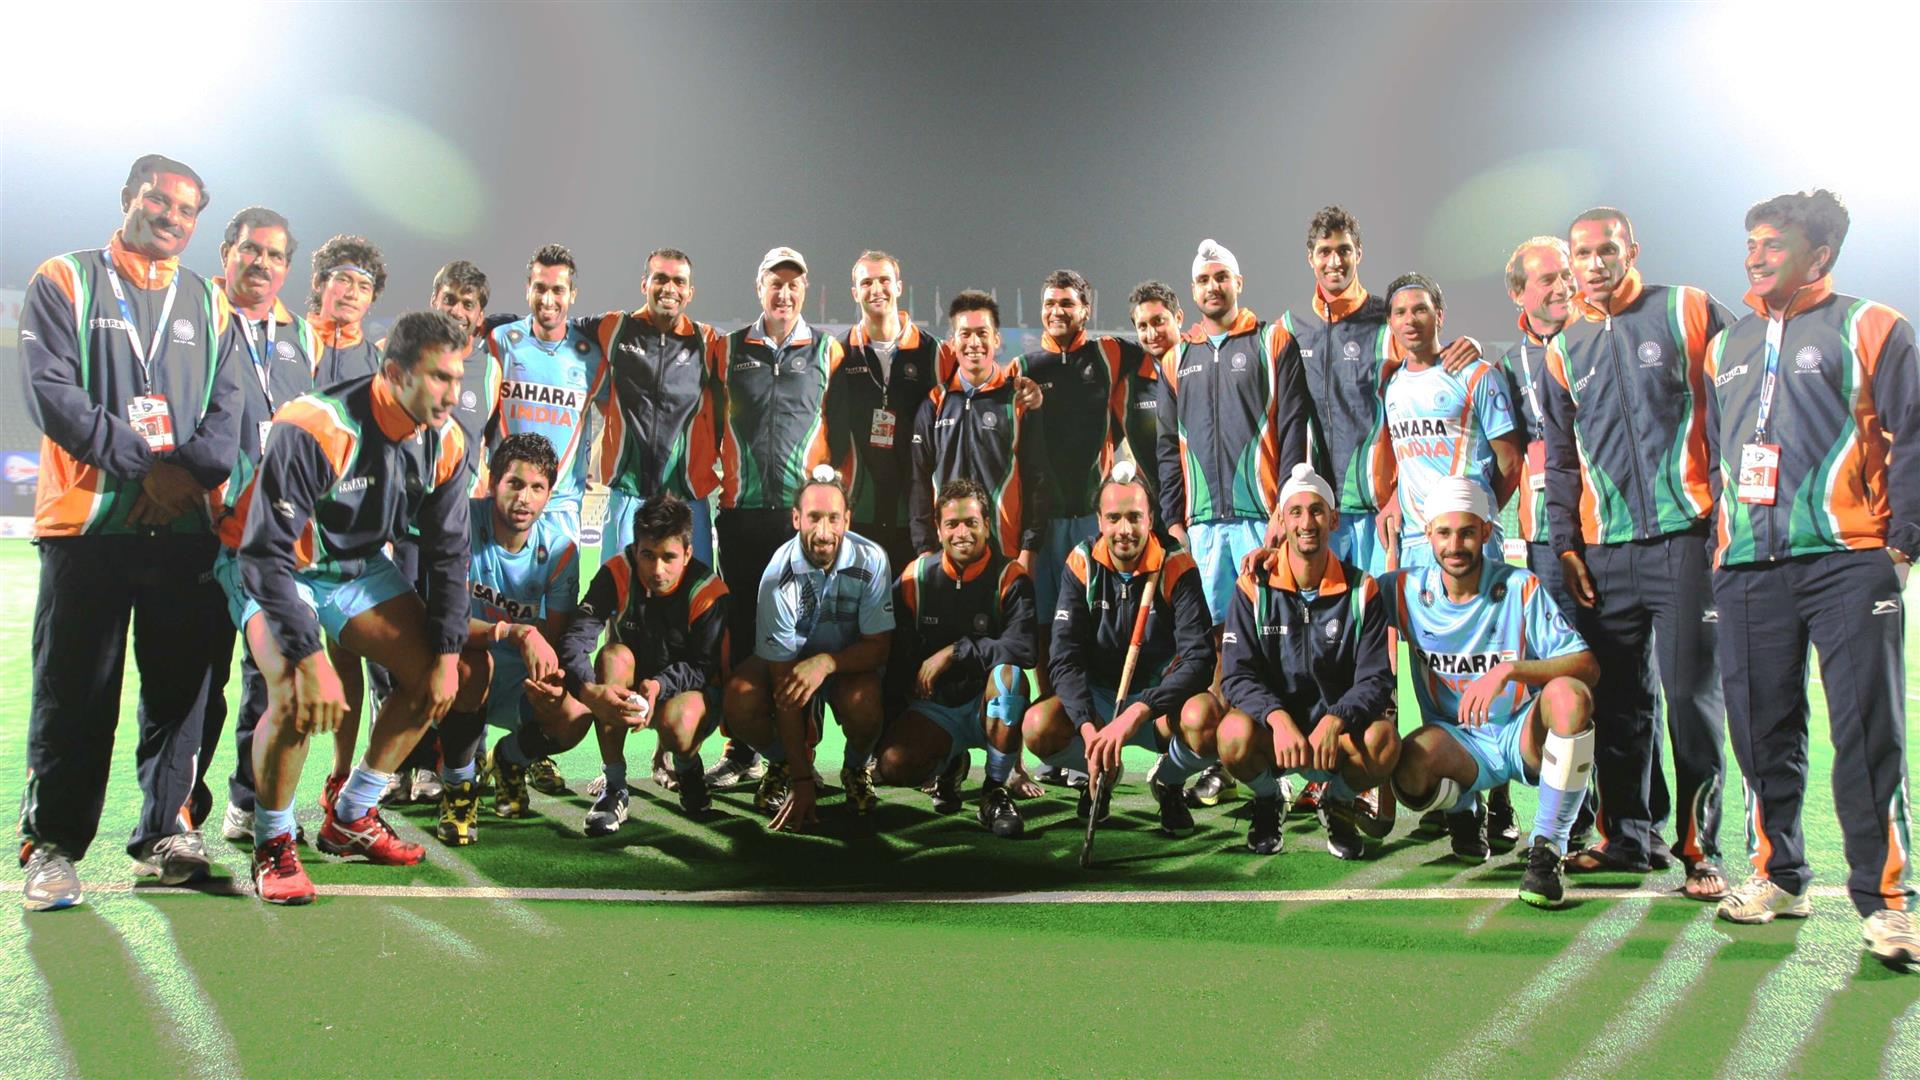 wallpaper field hockey